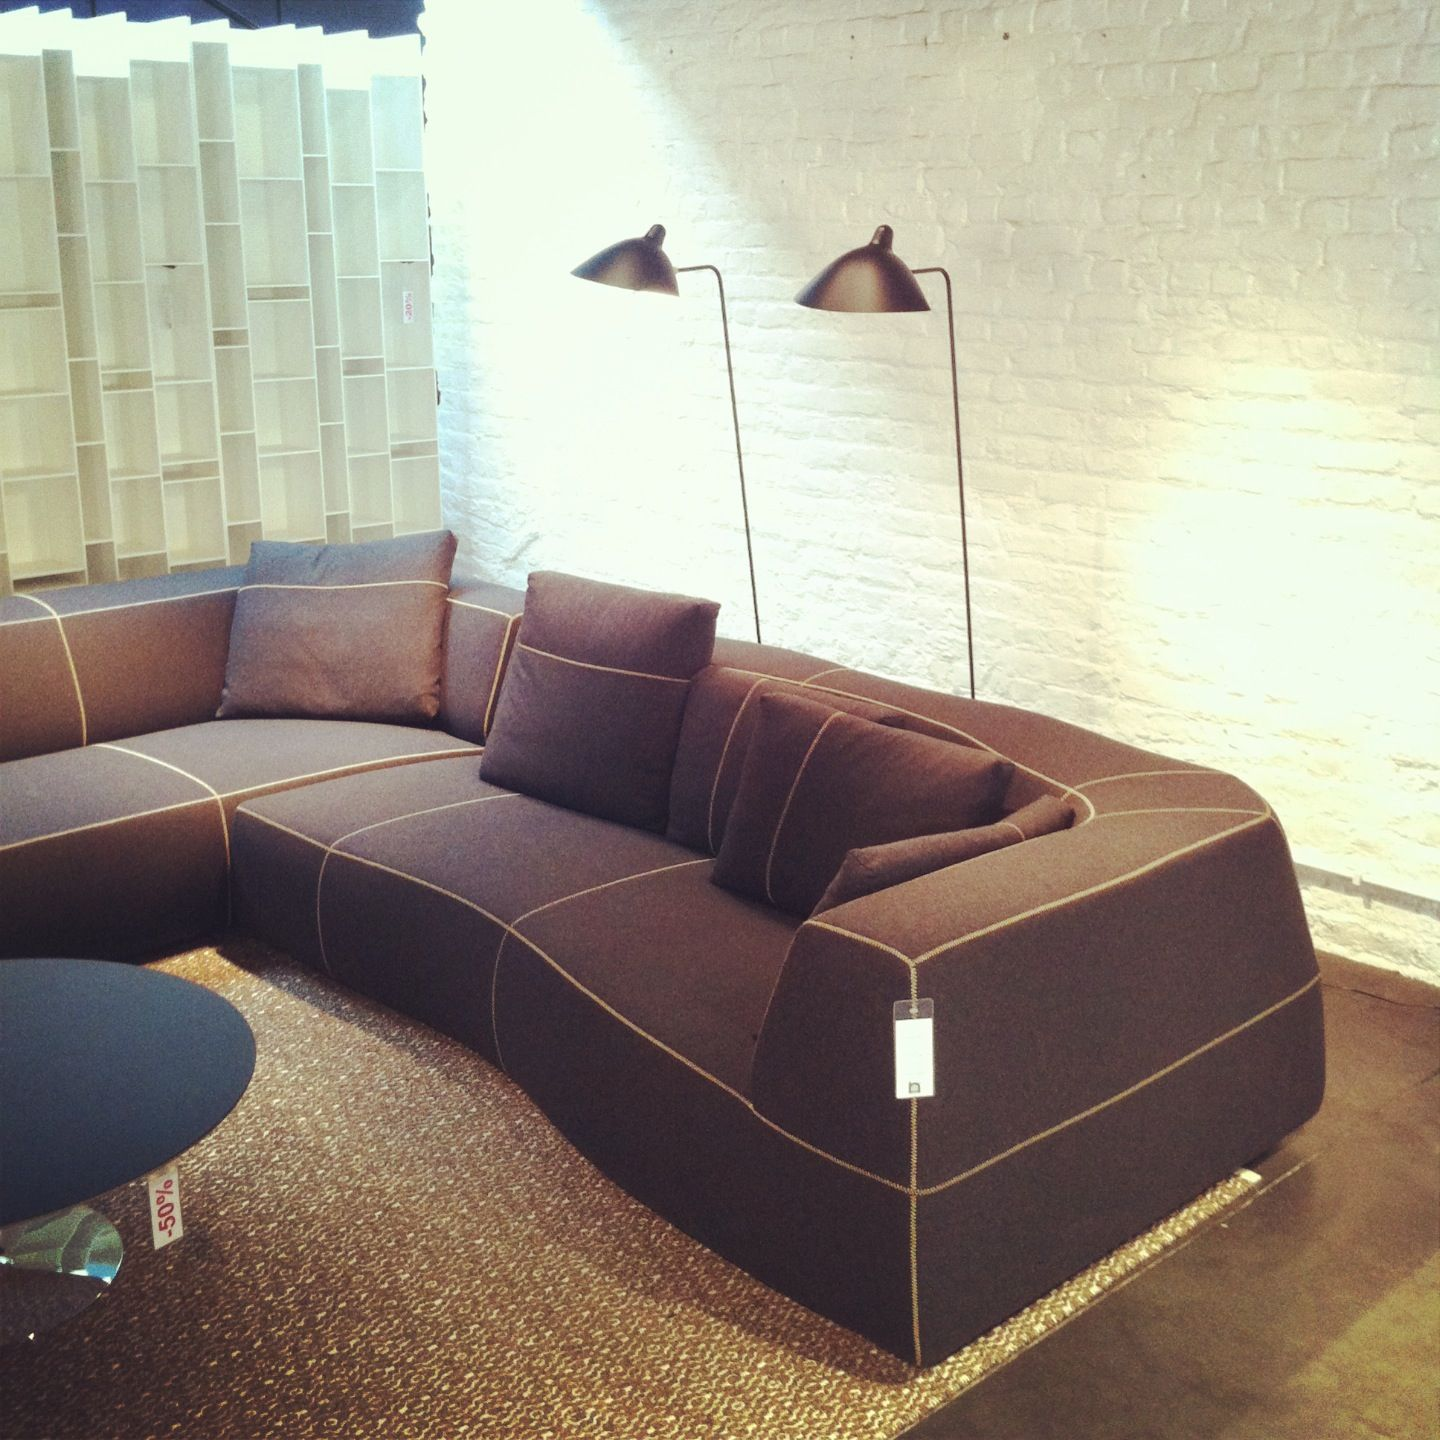 Bend Sofa by B Italia & Patricia Urquiola Lampadaire by Serge